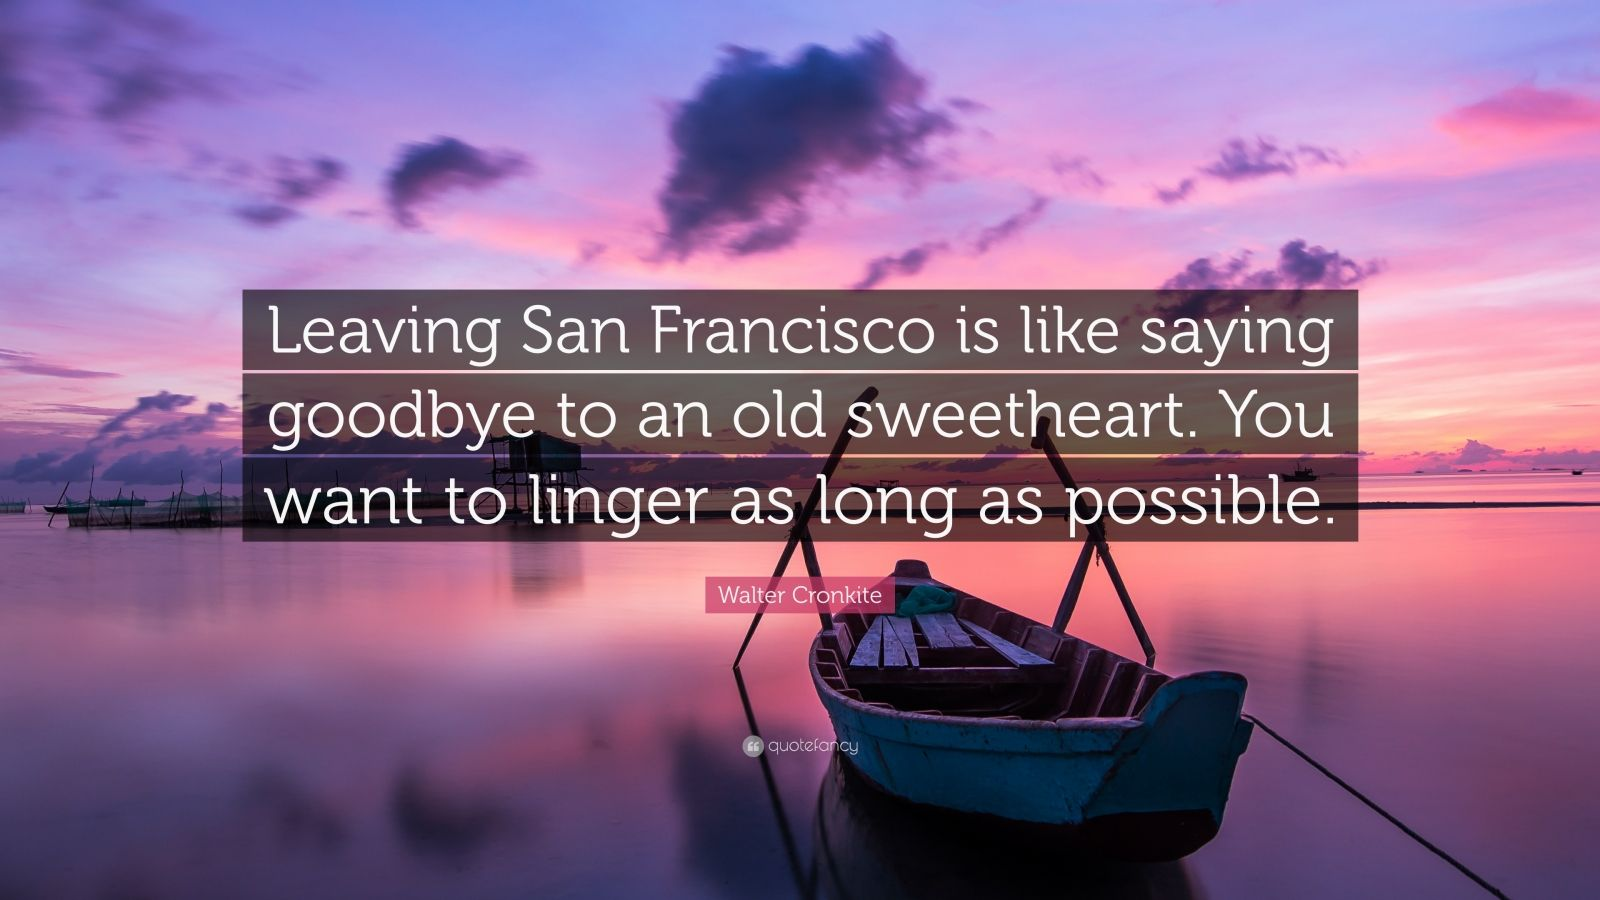 """Walter Cronkite Quote: """"Leaving San Francisco is like saying goodbye to an old sweetheart. You want to linger as long as possible."""""""